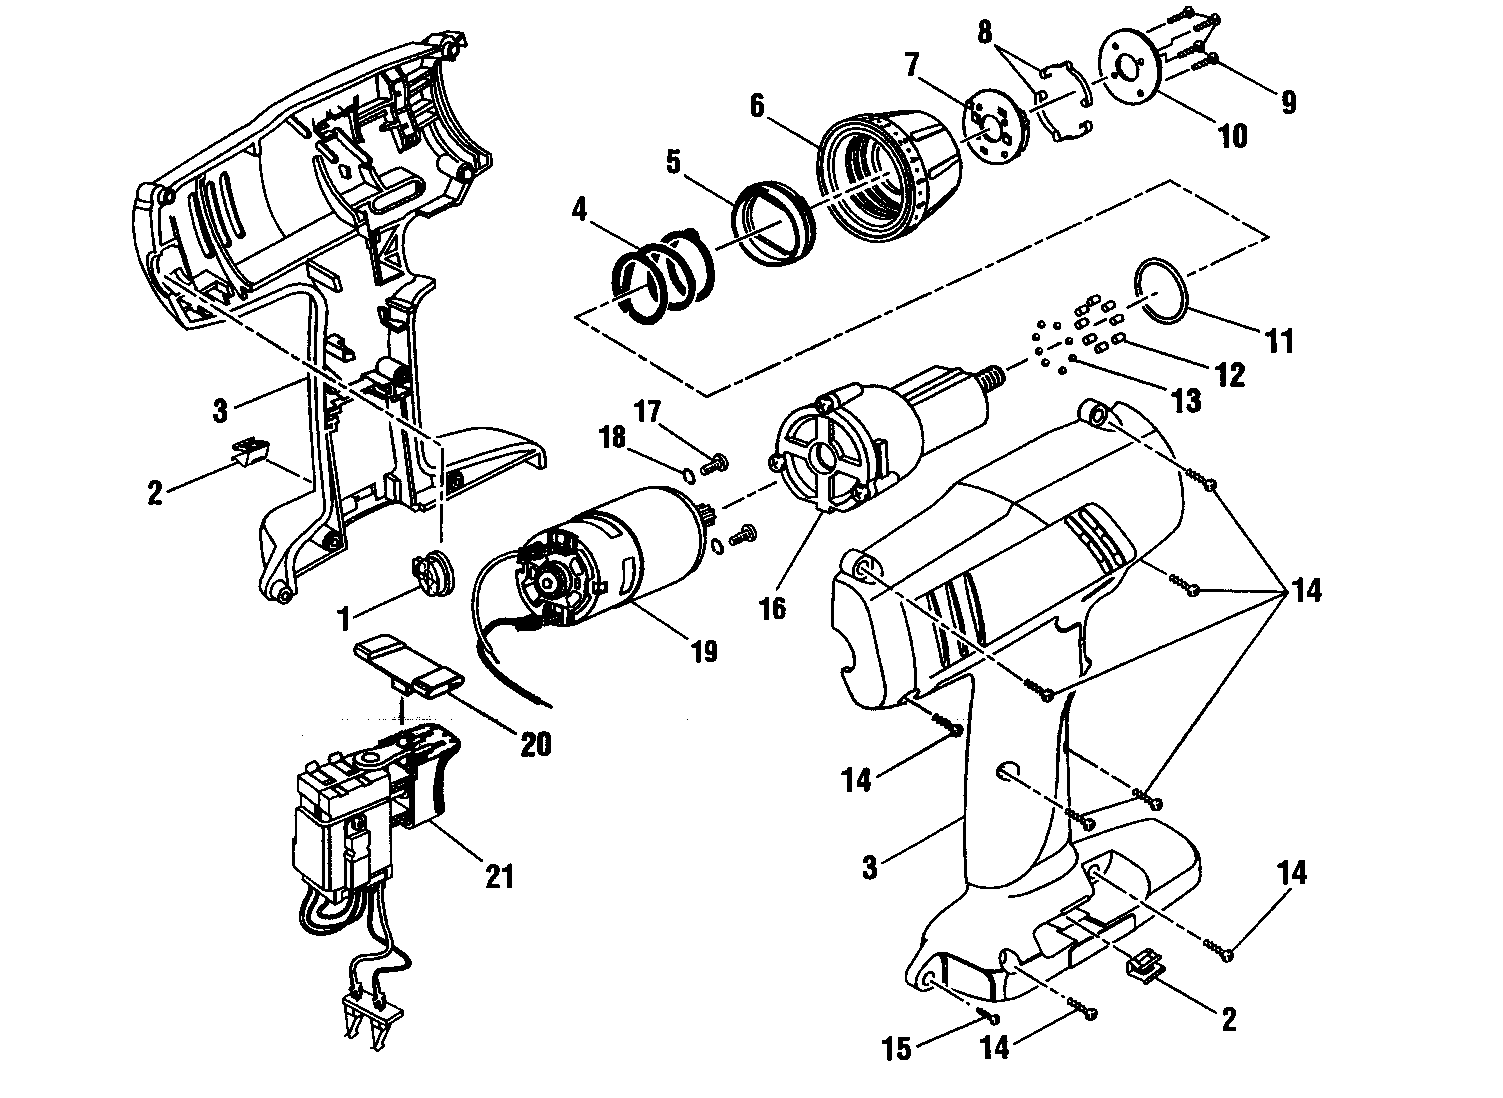 Electrical Diagram And Parts List For Craftsman Boatmotorparts Model